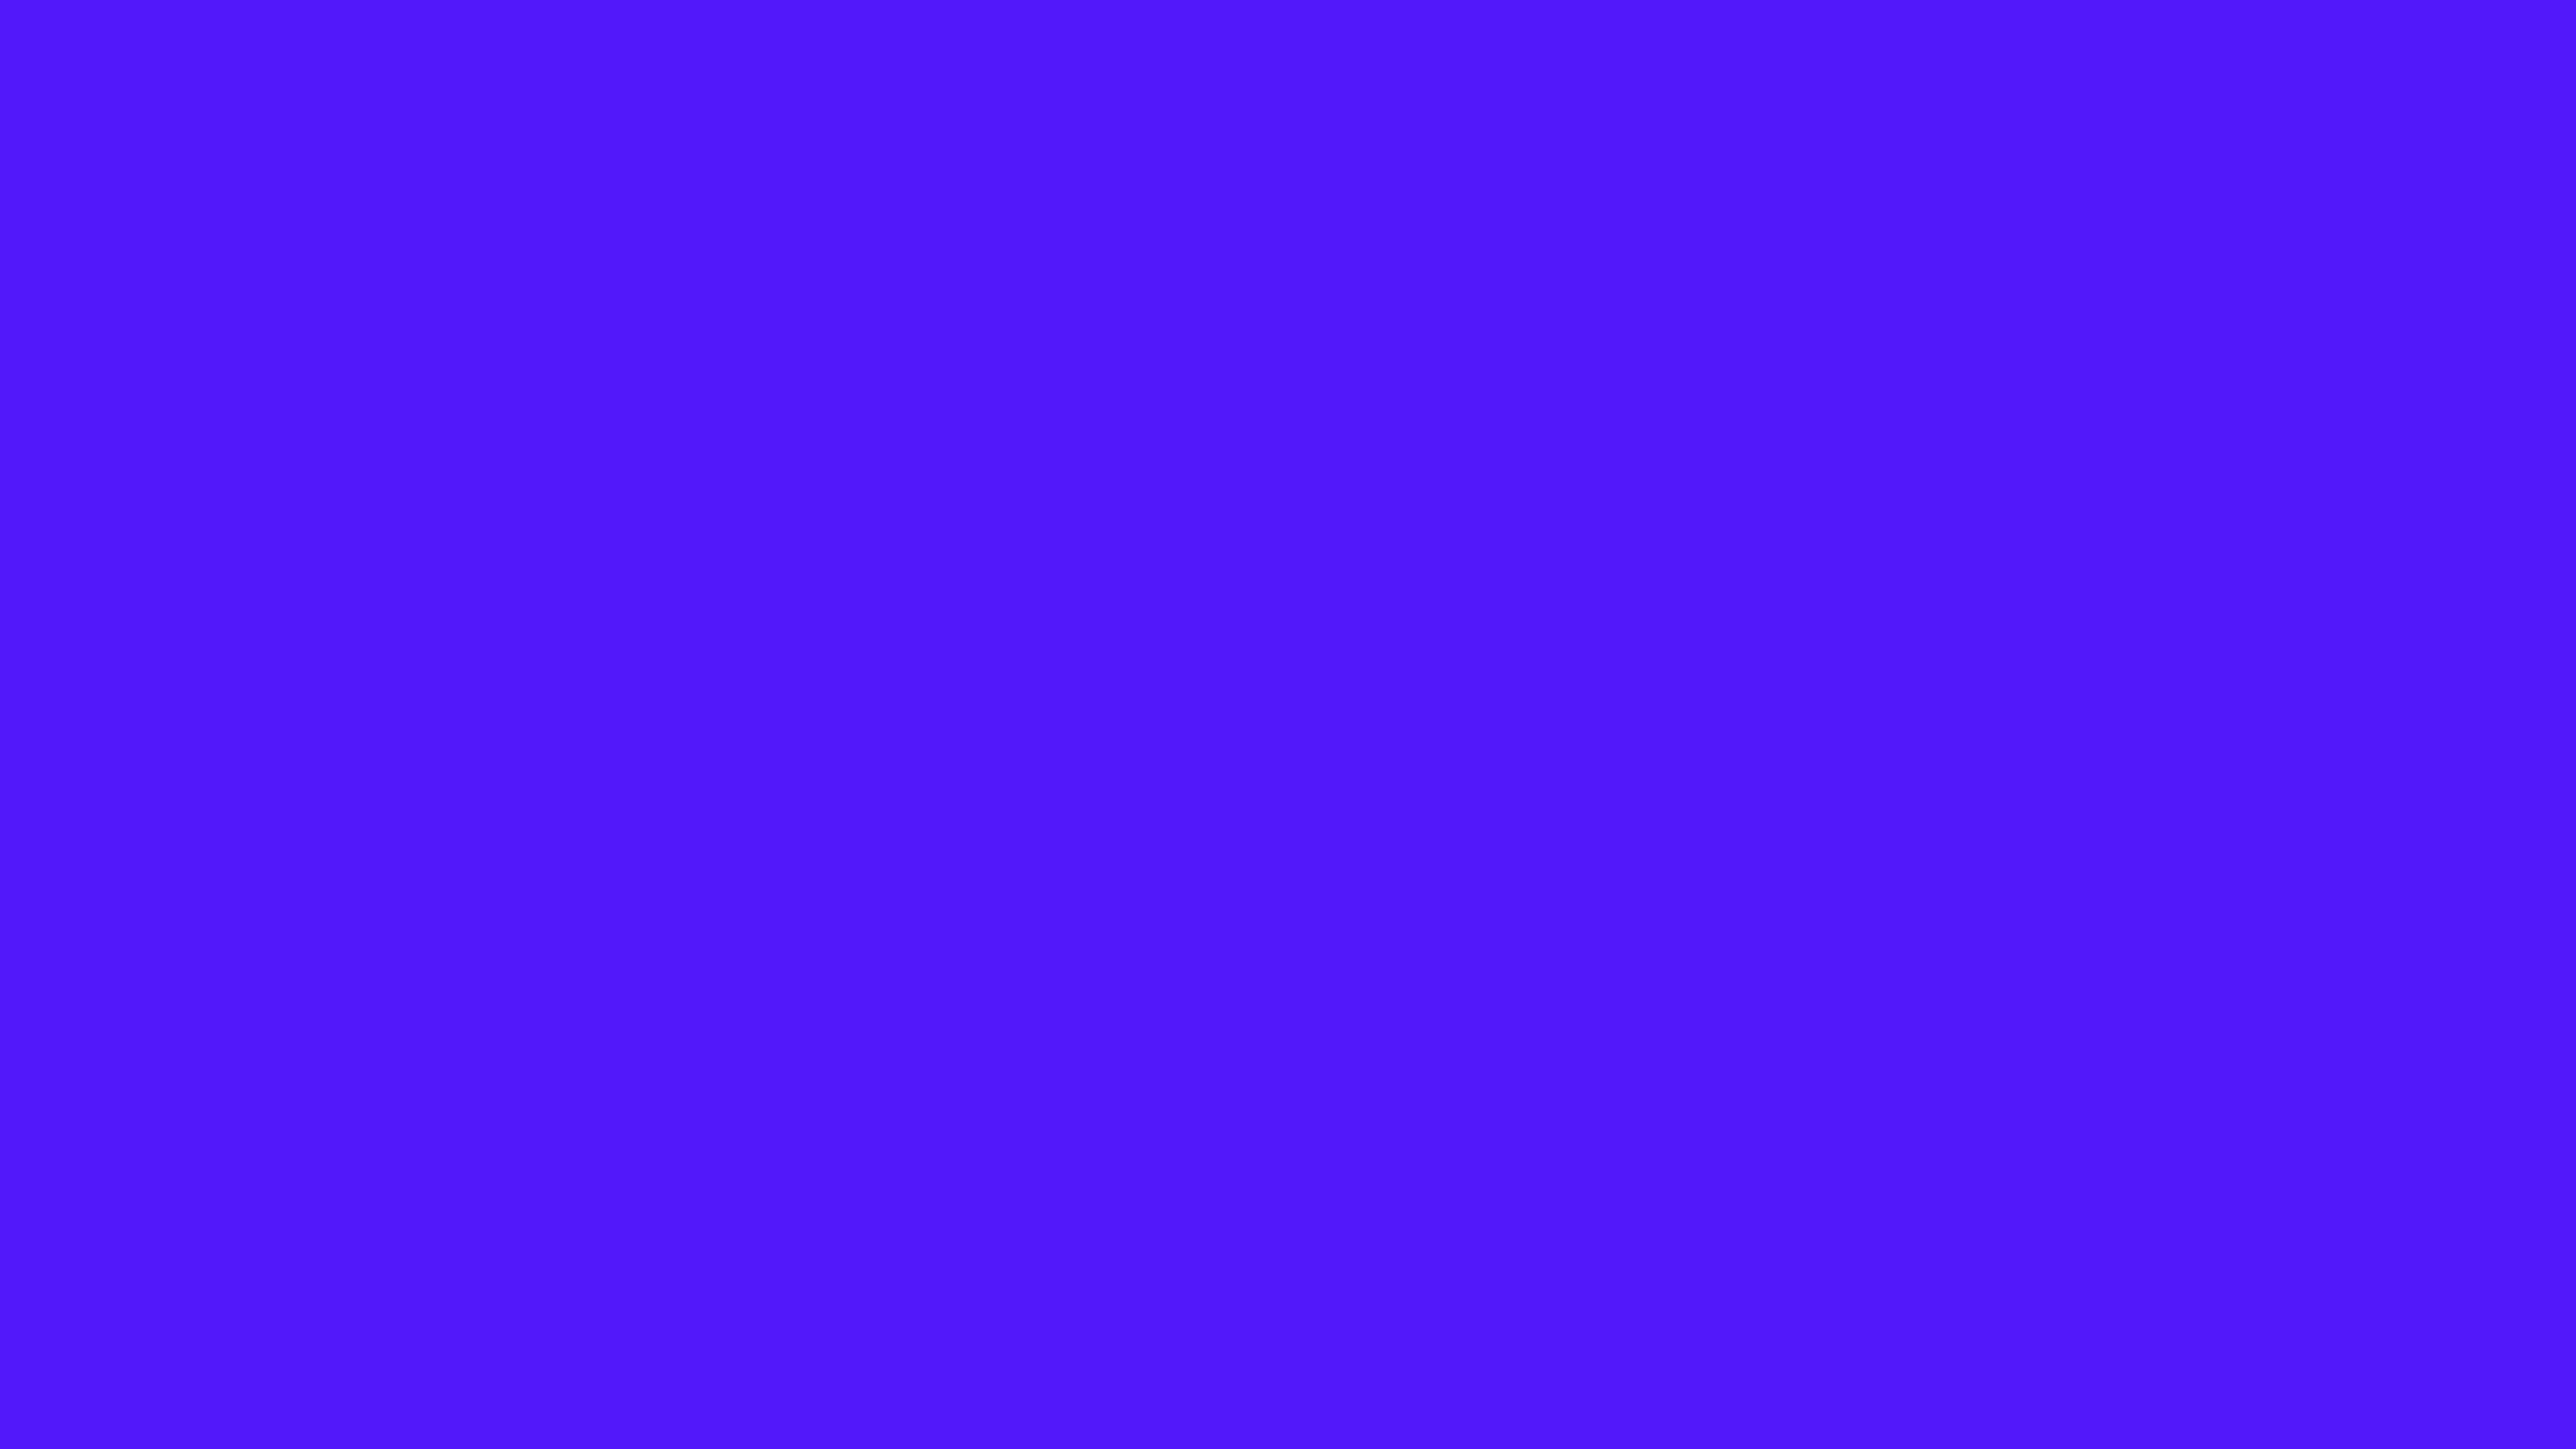 4096x2304 Han Purple Solid Color Background